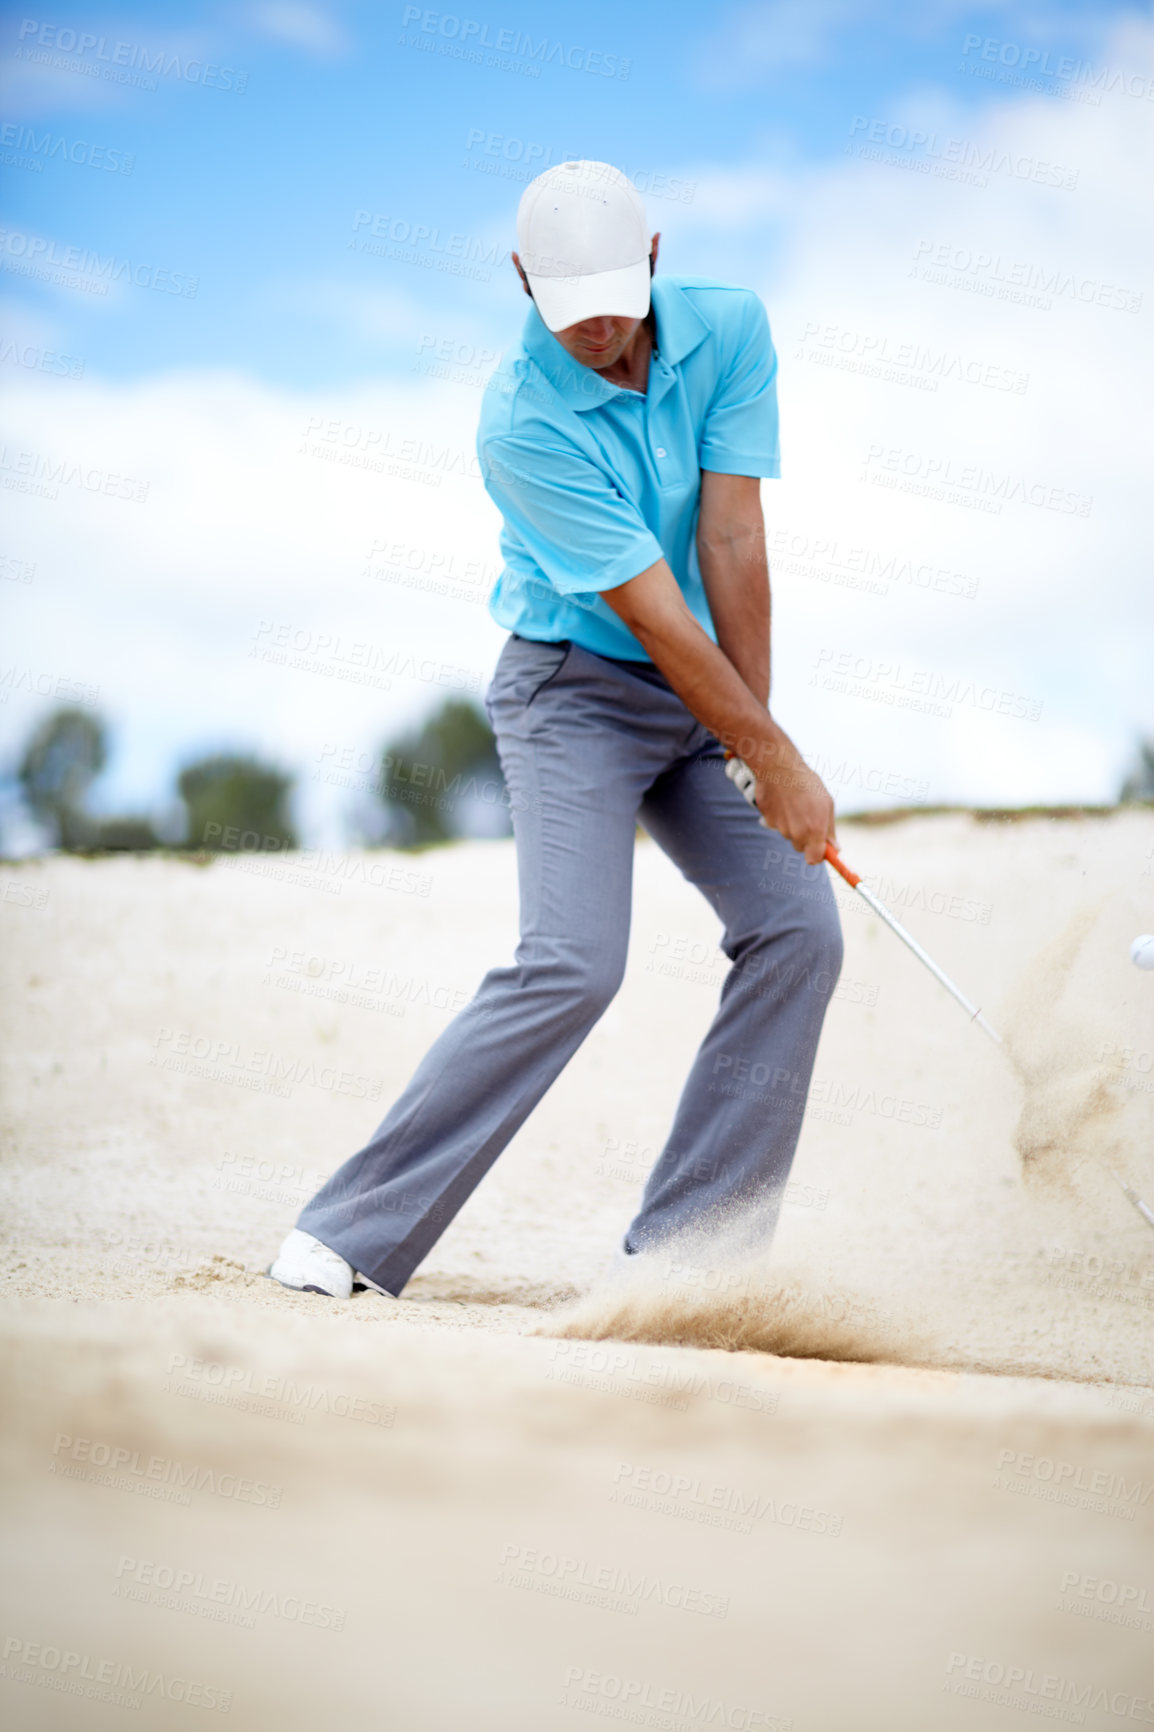 Buy stock photo An image of a young male golfer chipping his ball out of a bunker in a game of golf